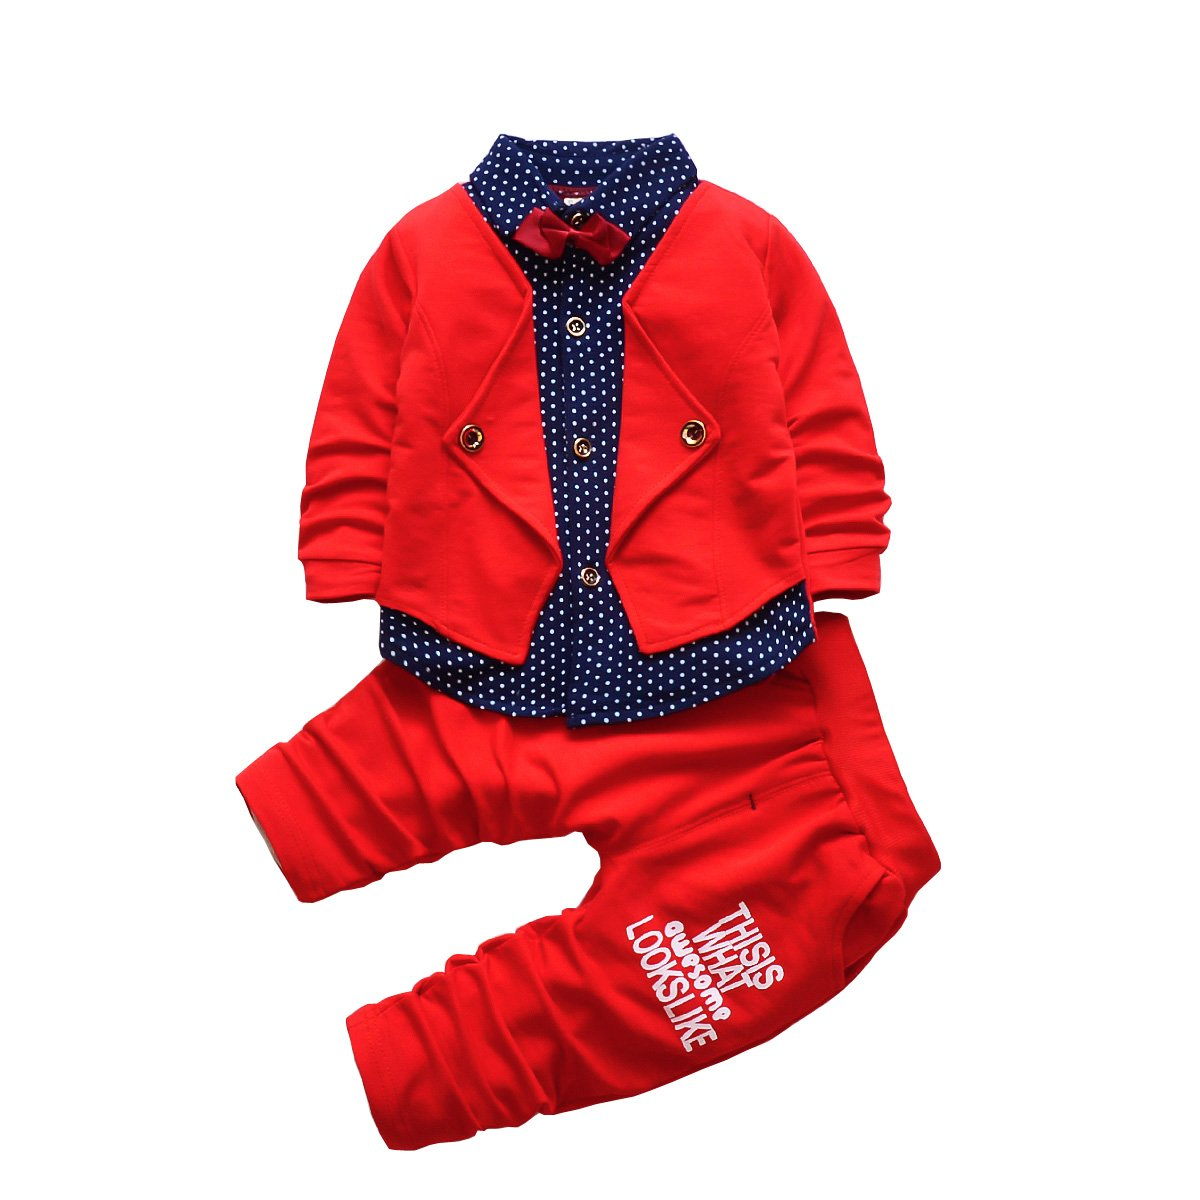 HZXVic 2pcs Baby Boy Dress Clothes Toddler Outfits Infant Tuxedo Formal Suits Set Shirt + Pants(Red, 4T)